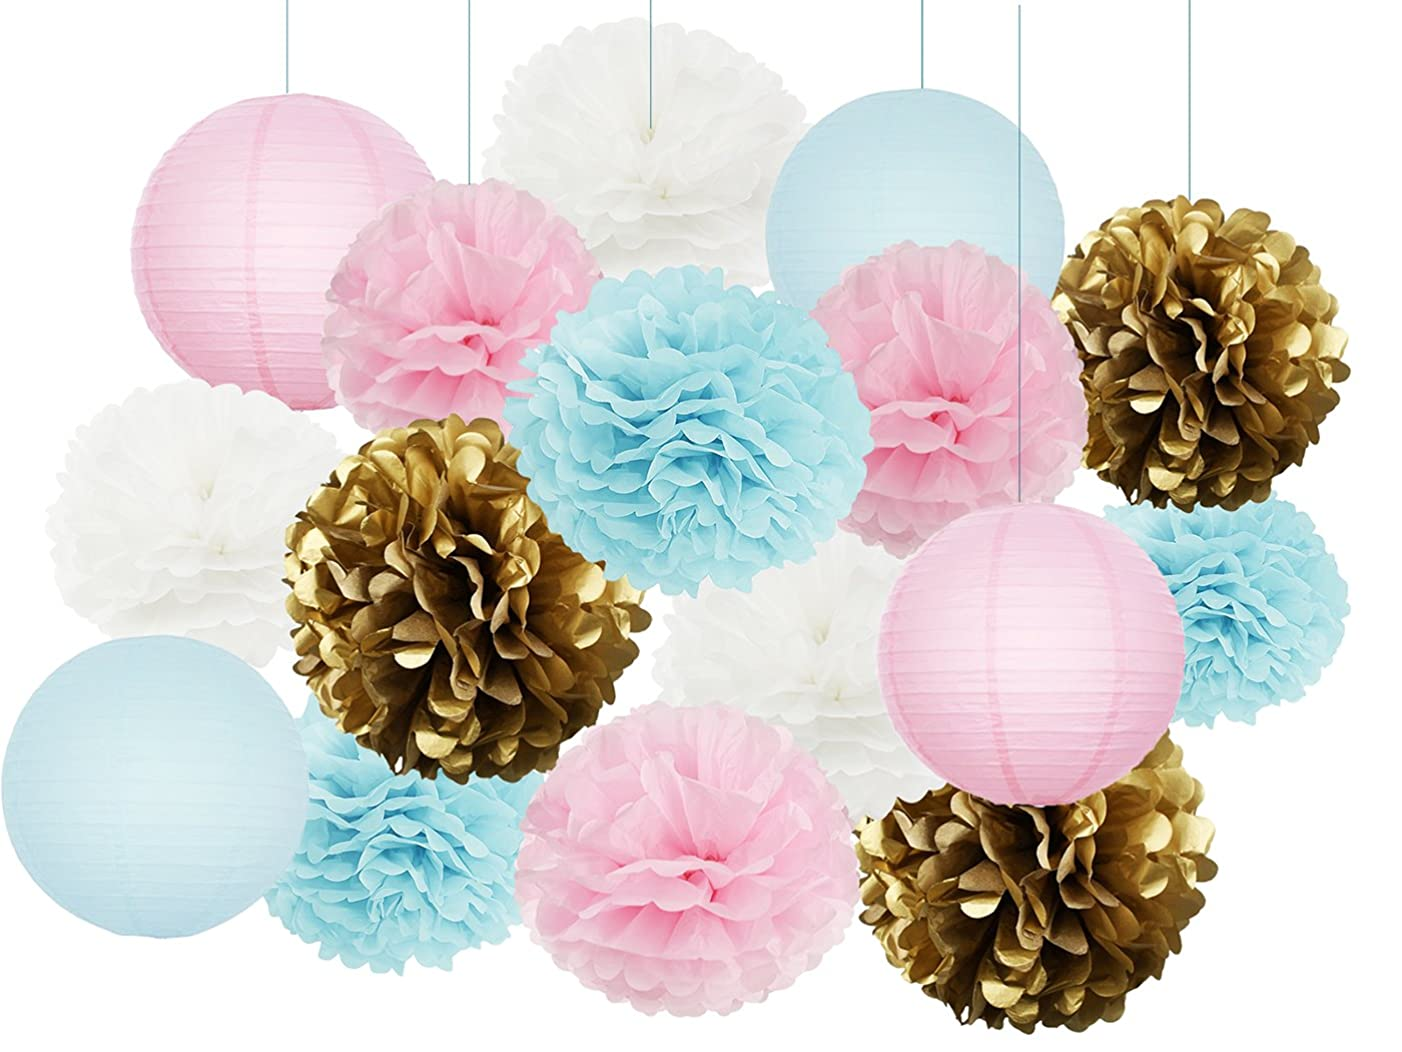 Gender Reveal Party Supplies Boy or Girl Baby Shower Decorations Baby Blue Pink White Gold Tissue Paper Pom Pom Paper Lanterns for Pink and Blue Decorations/Gender Reveal Party Decorations